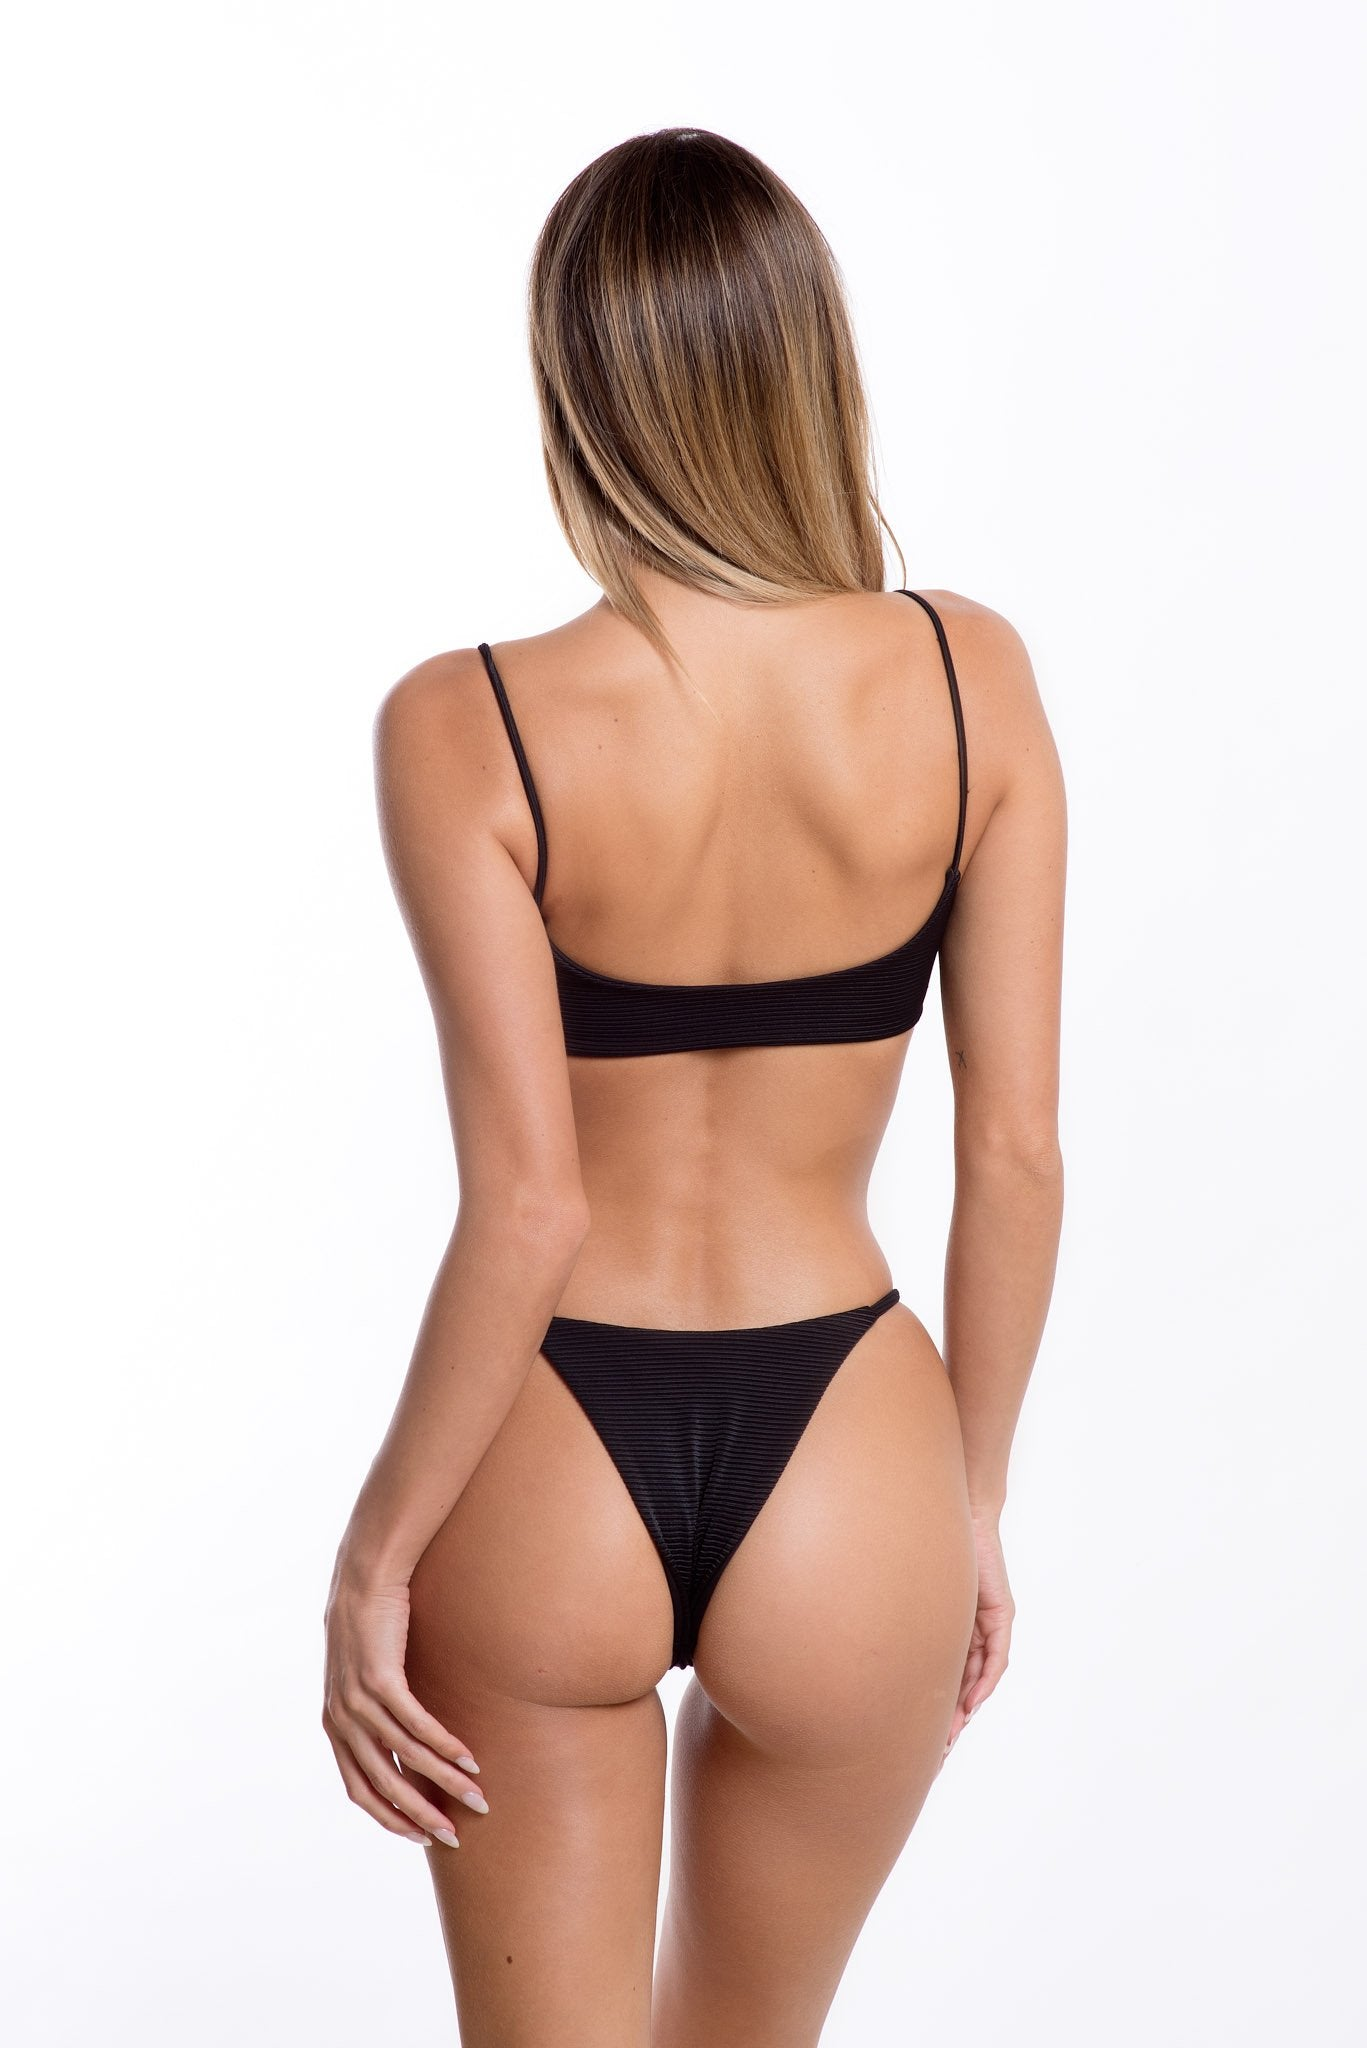 Lara Bottoms Black Rib